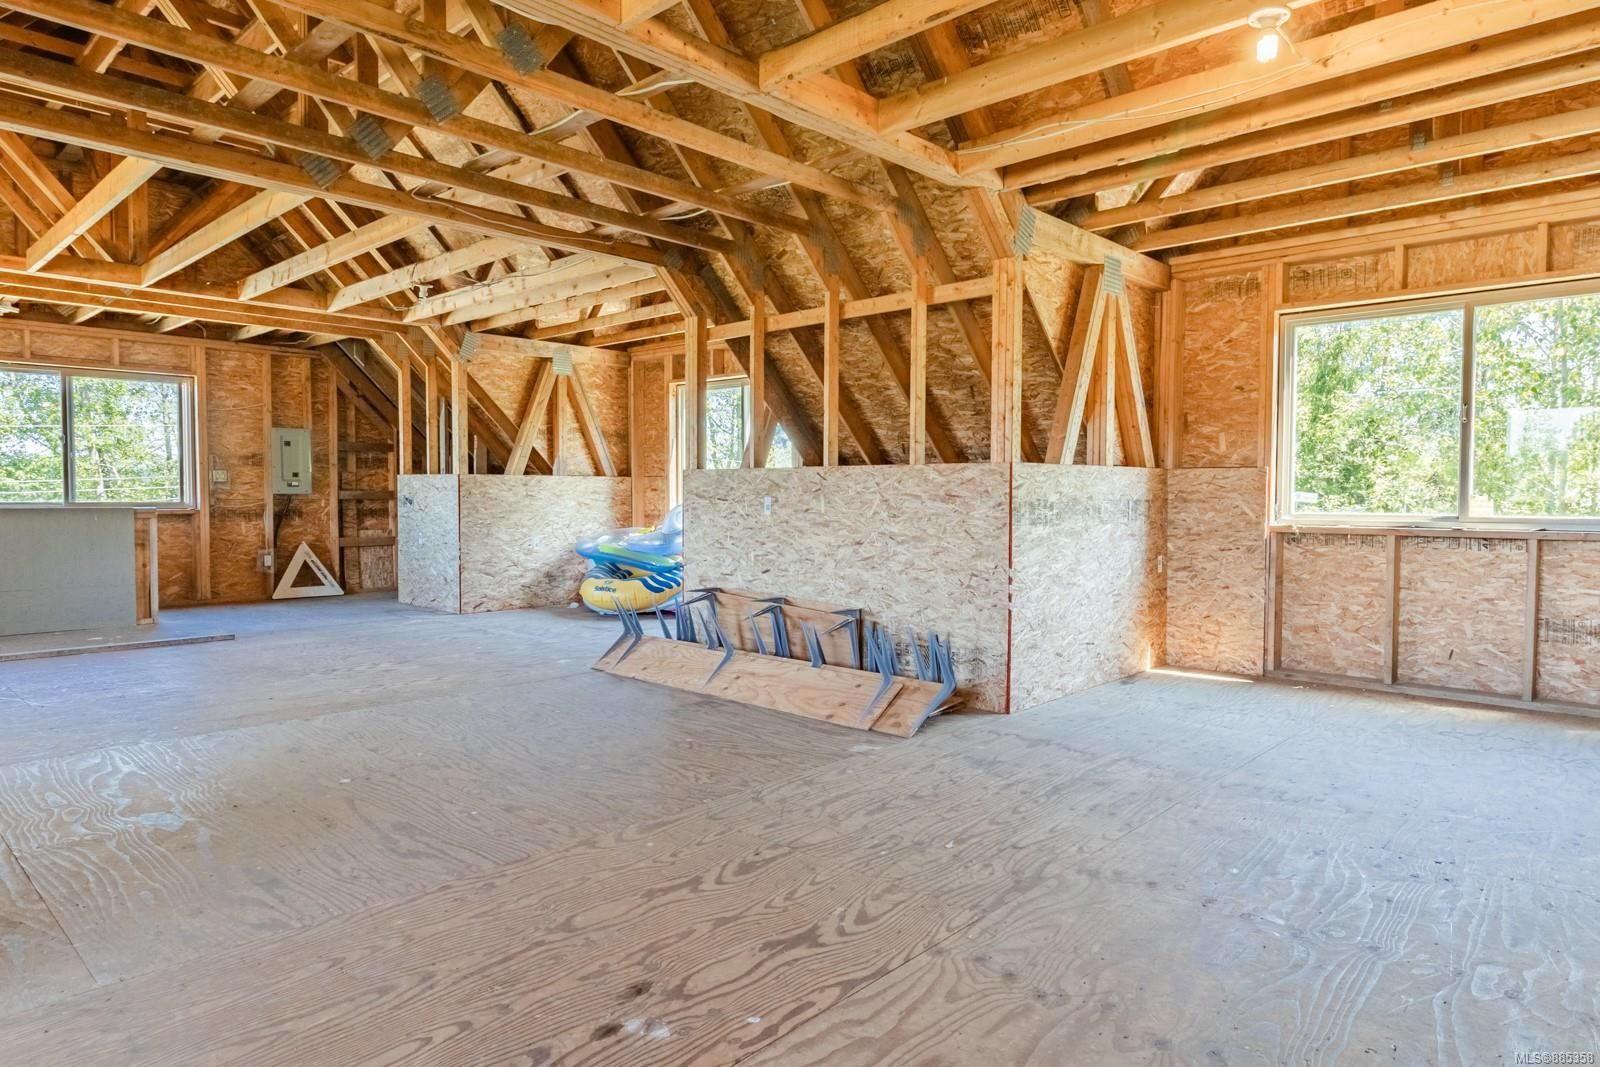 Photo 59: Photos: 2850 Peters Rd in : PQ Qualicum Beach House for sale (Parksville/Qualicum)  : MLS®# 885358